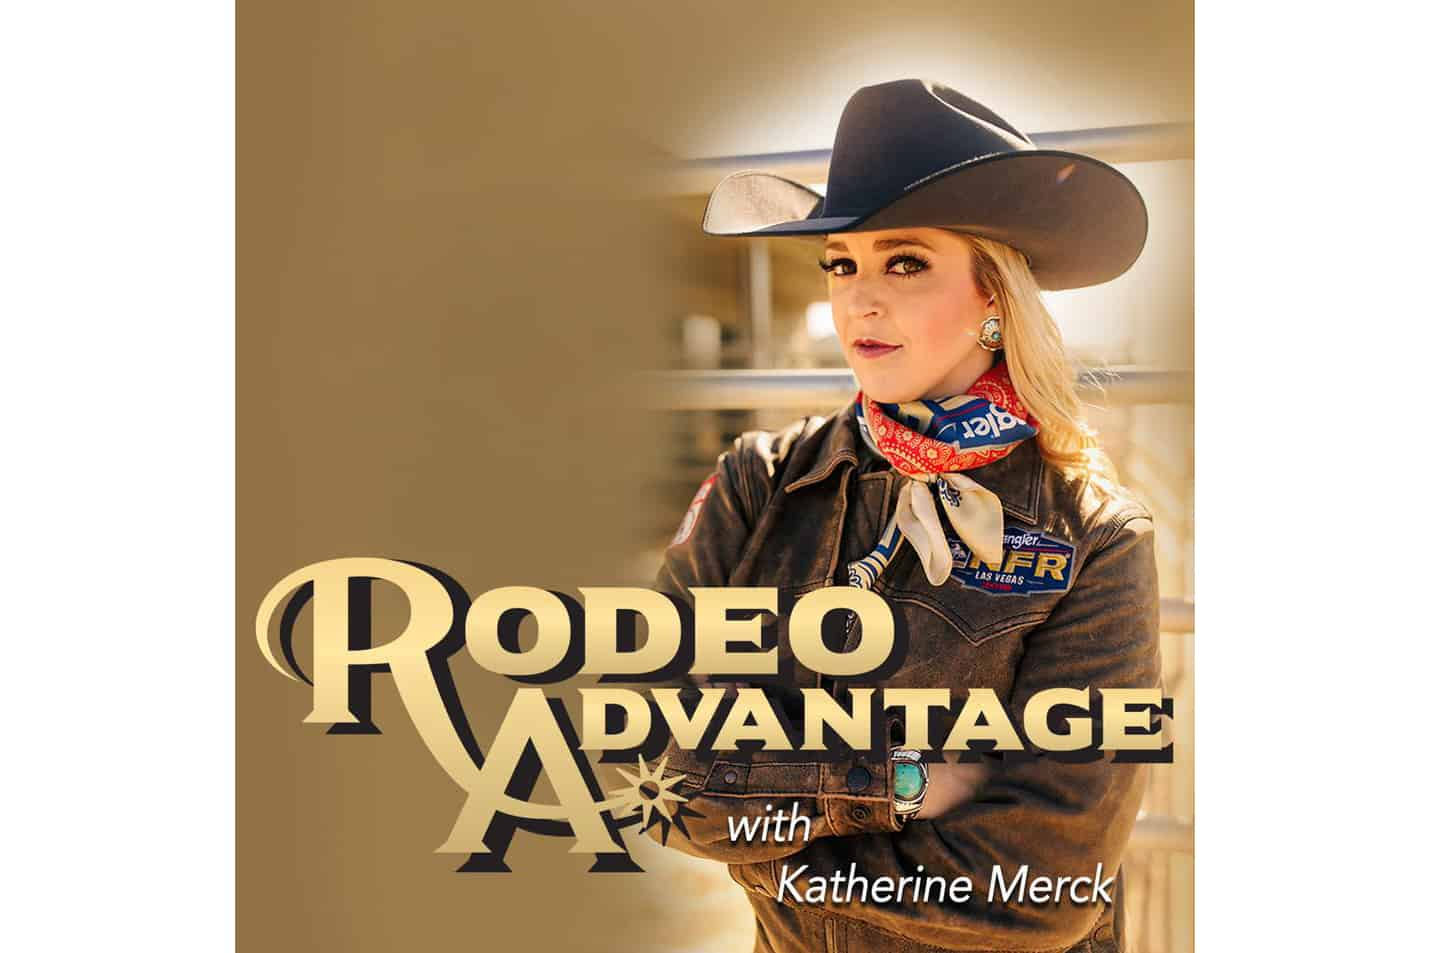 Katherine Merck Rodeo Advantage Cowgirl Magazine